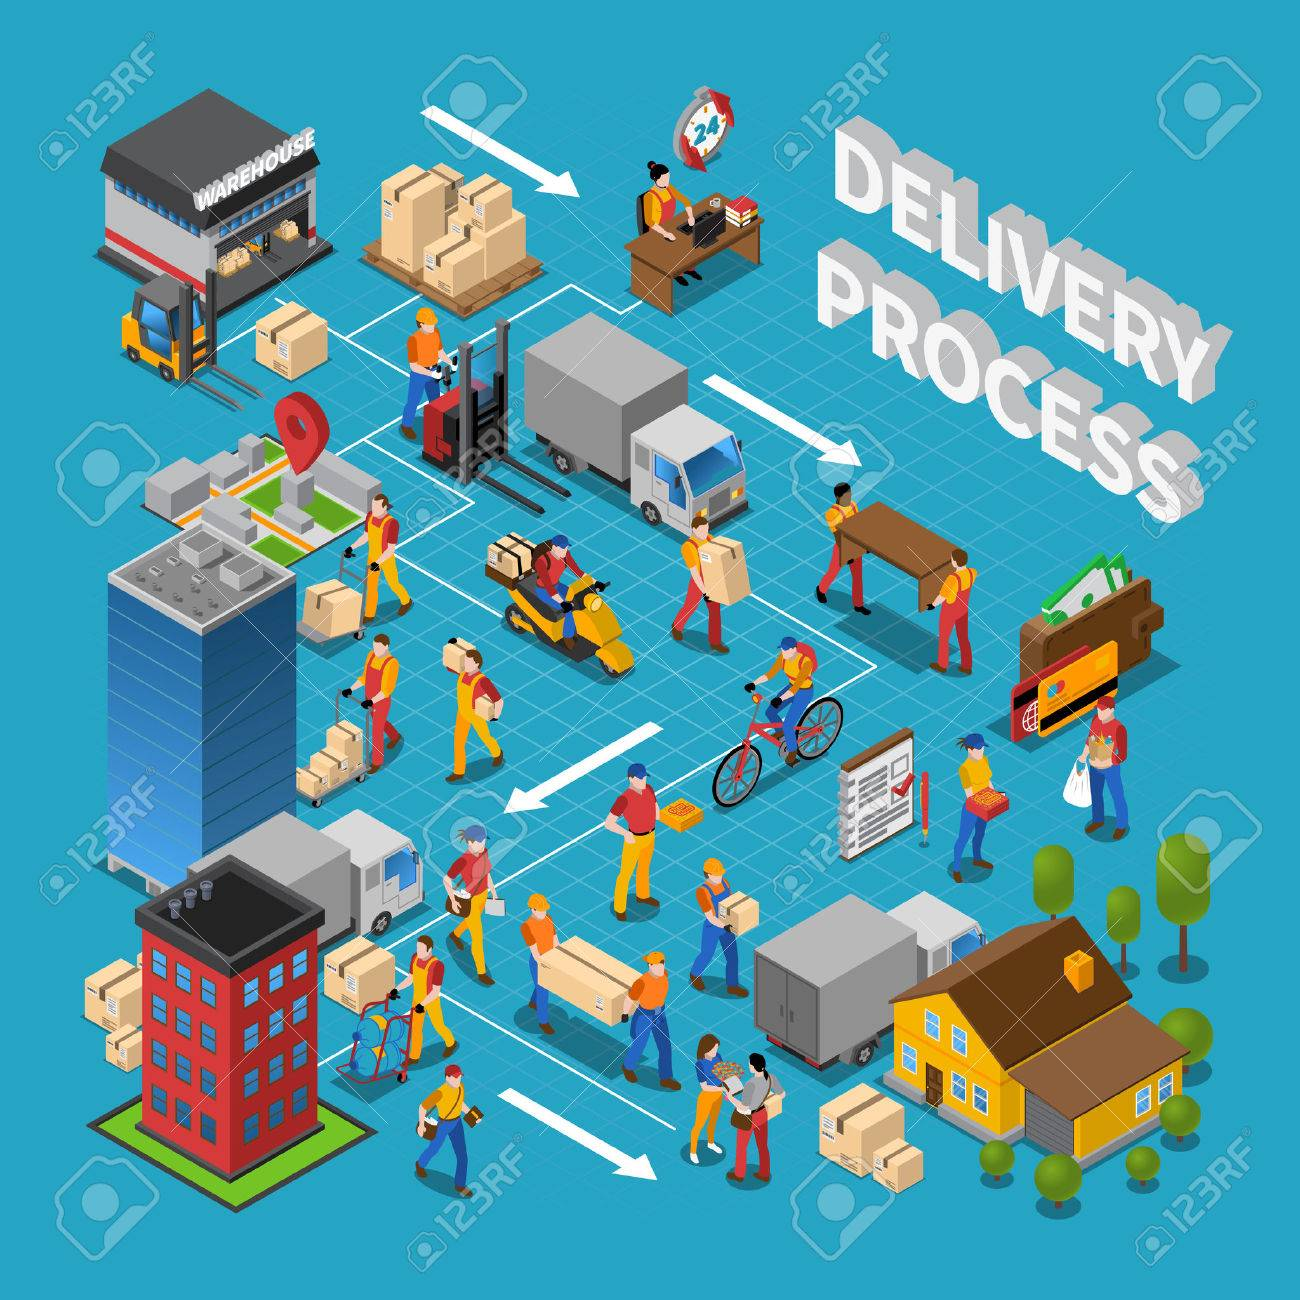 Delivery process concept composition with logistics symbols on blue background isometric vector illustration Stock Vector - 62535620